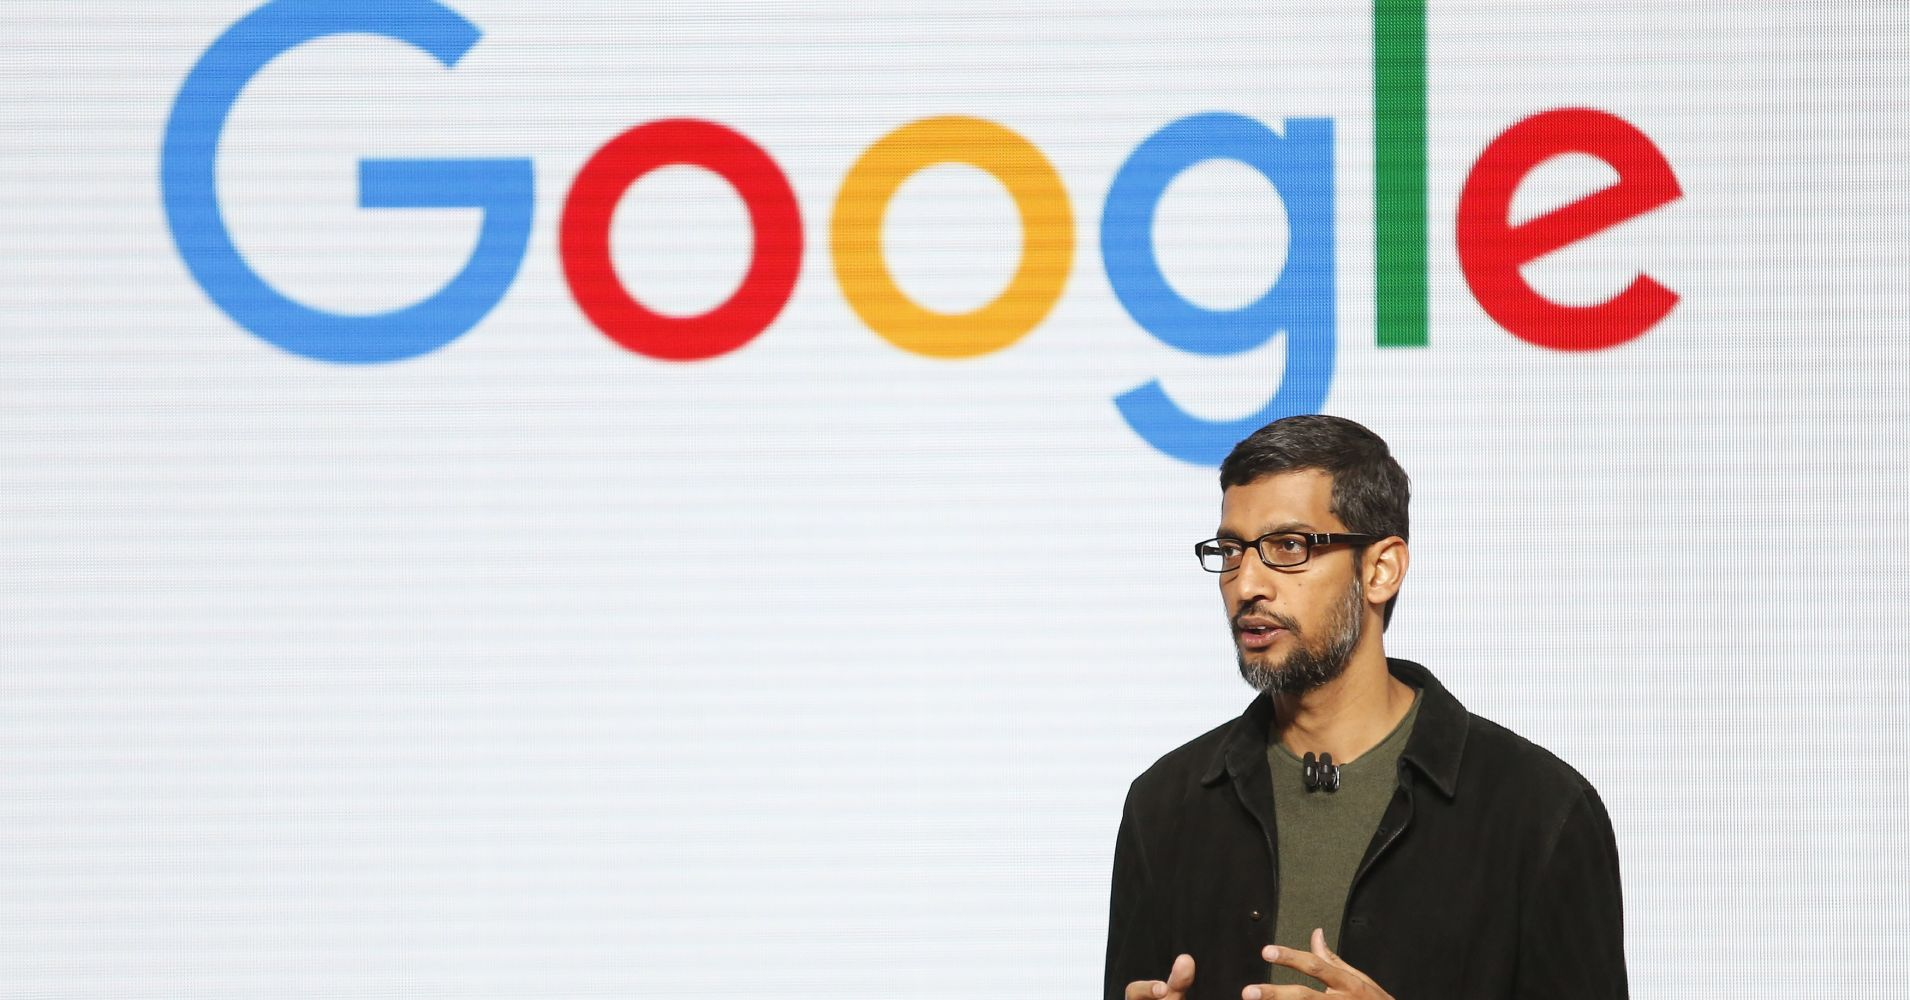 Google CEO Sundar Pichai's 11 Year Old Son Mines Ethereum On